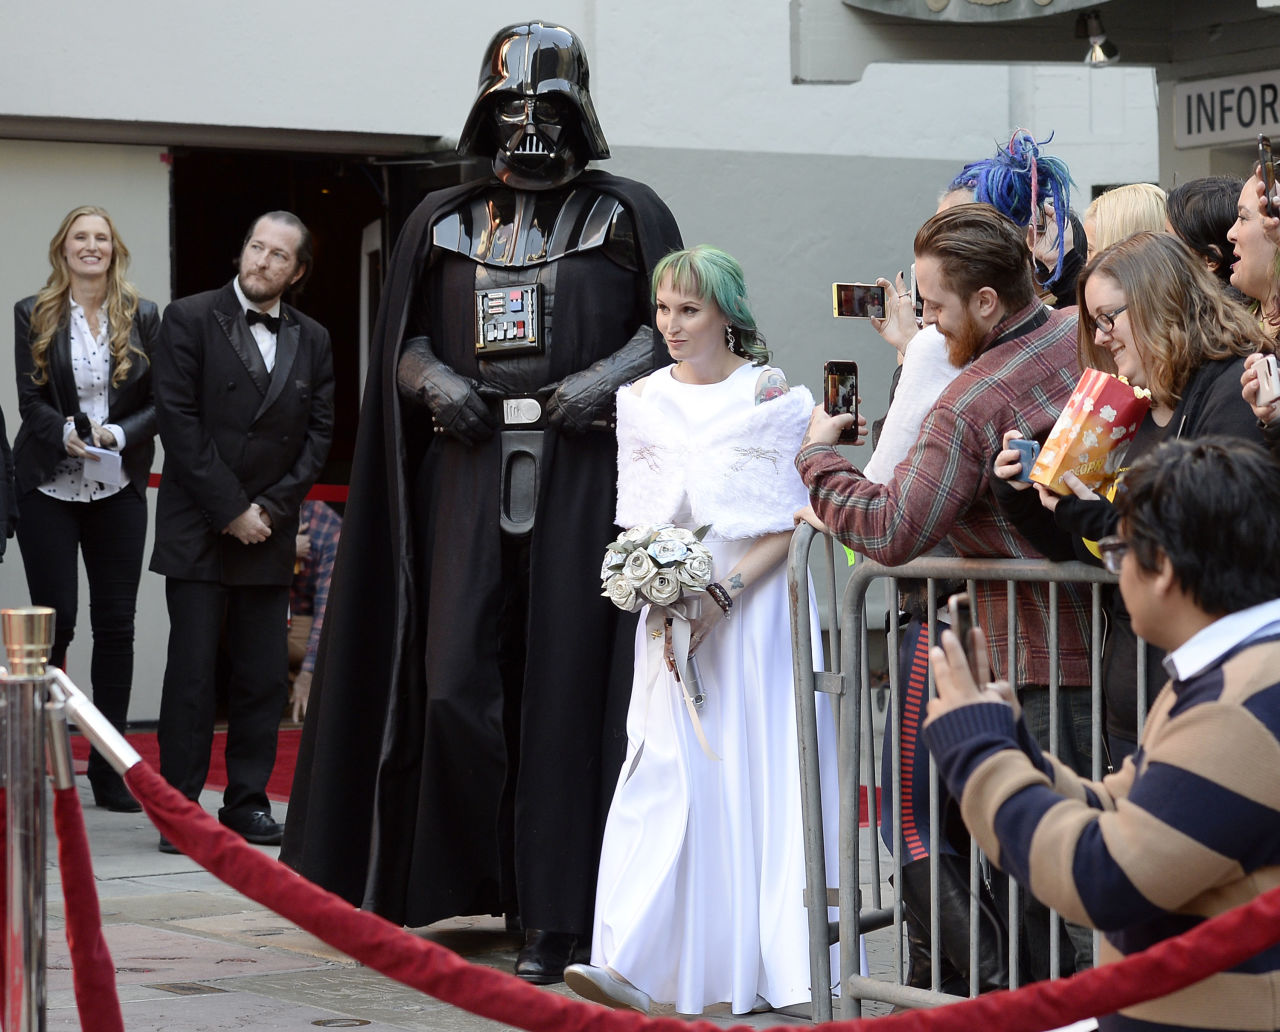 The Force Awakens True Love For These Star Wars Fans Who Got Married ...